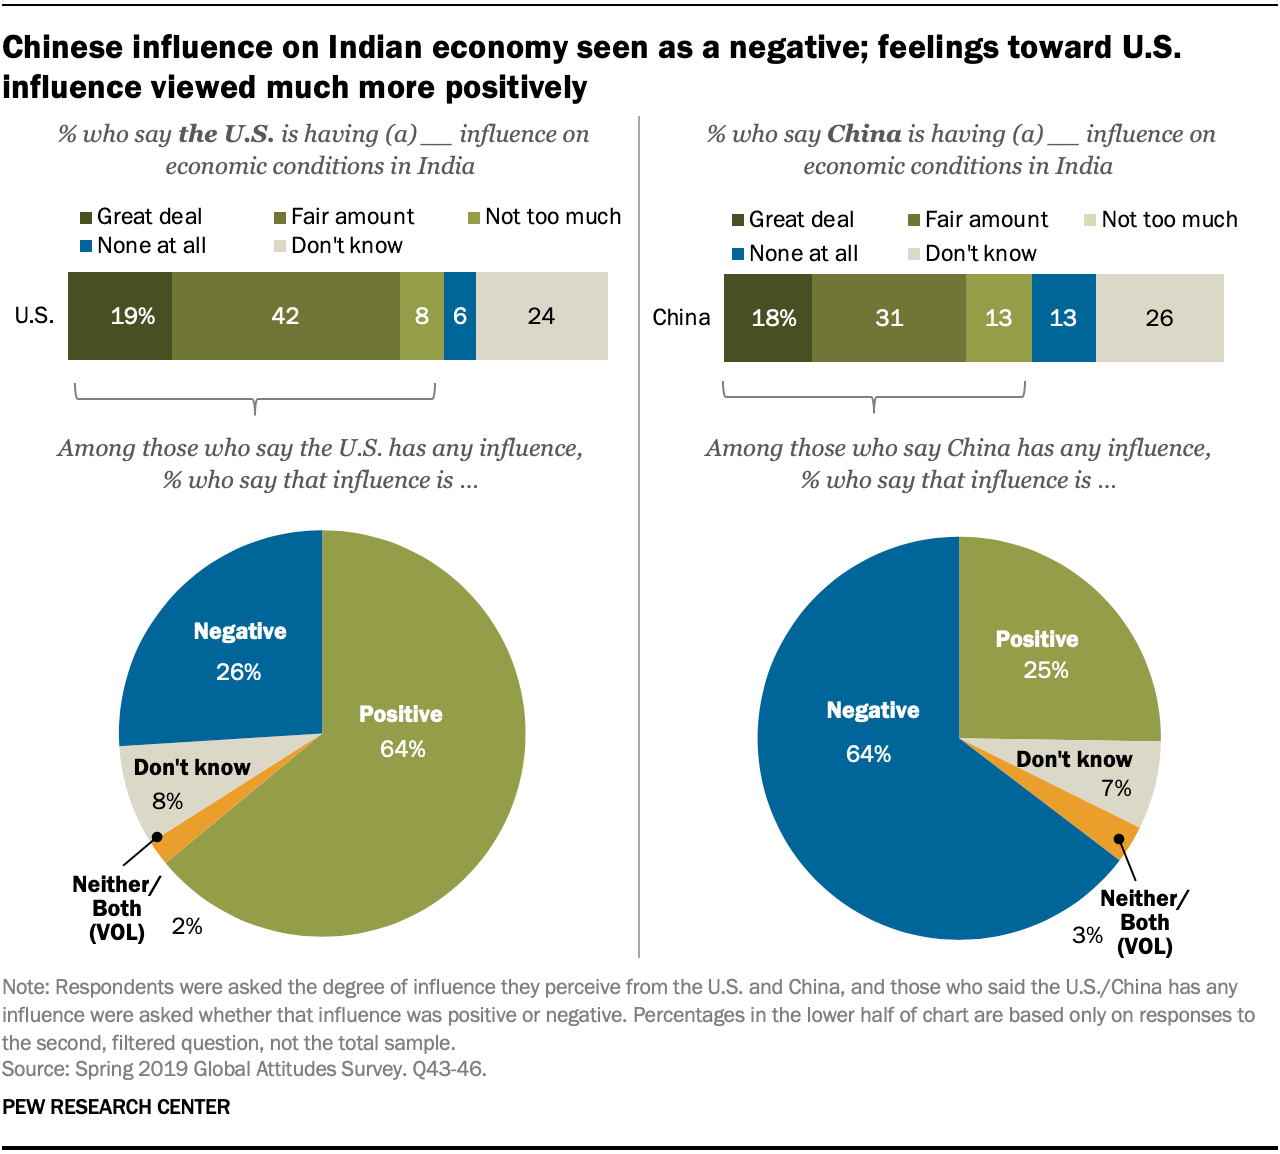 Chinese influence on Indian economy seen as a negative; feelings toward U.S. influence viewed much more positively